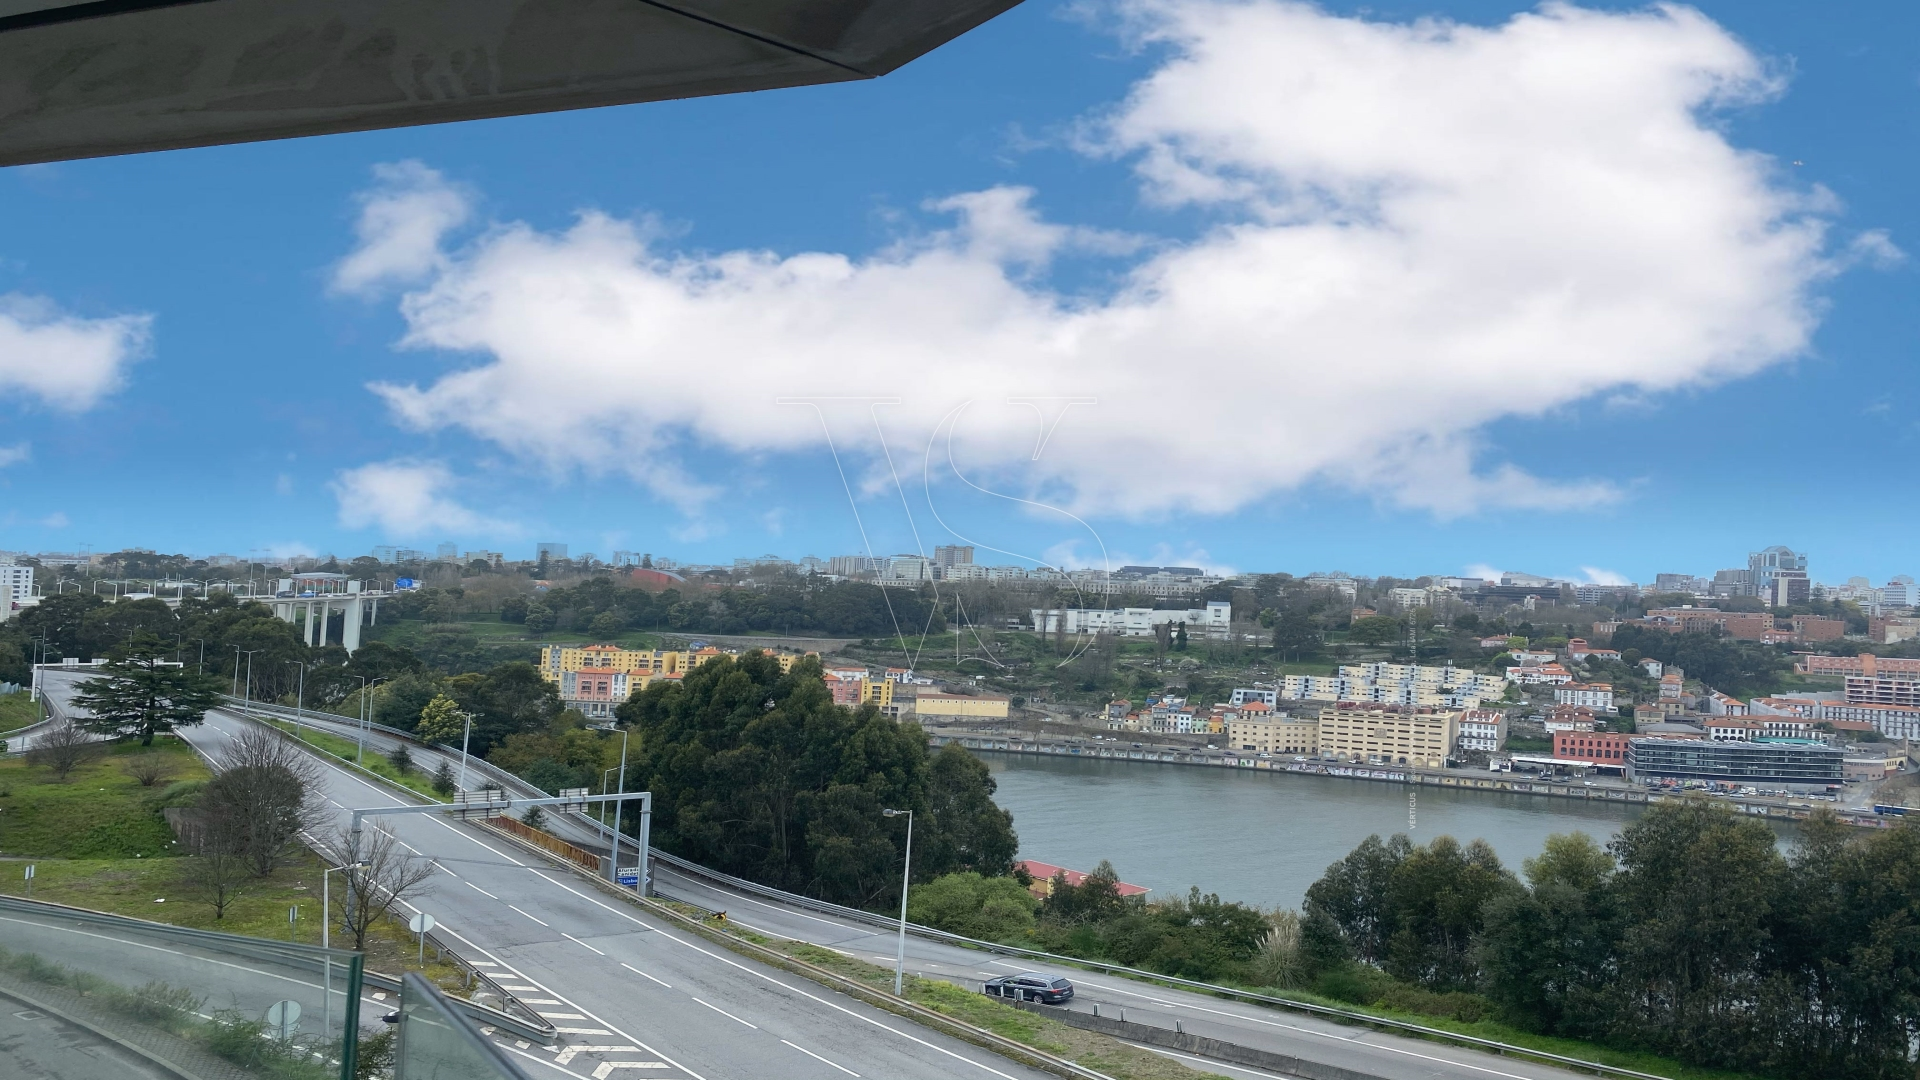 Apartment 5 bedrooms with 2 suites - Unalterable views over the Douro River and Oporto city